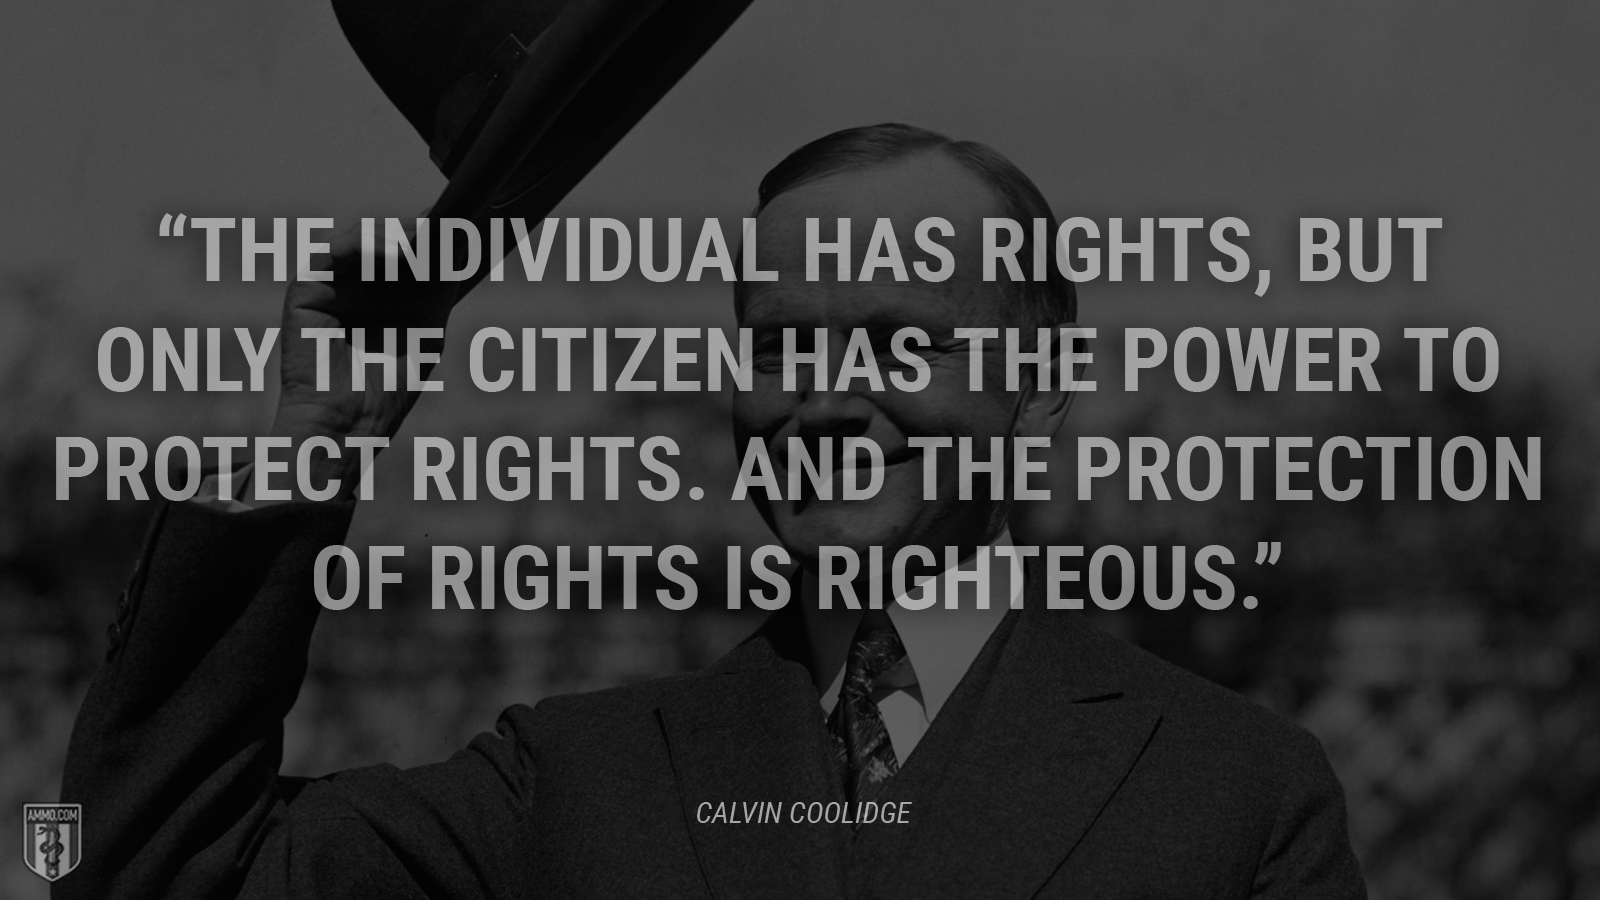 """The individual has rights, but only the citizen has the power to protect rights. And the protection of rights is righteous."" - Calvin Coolidge"